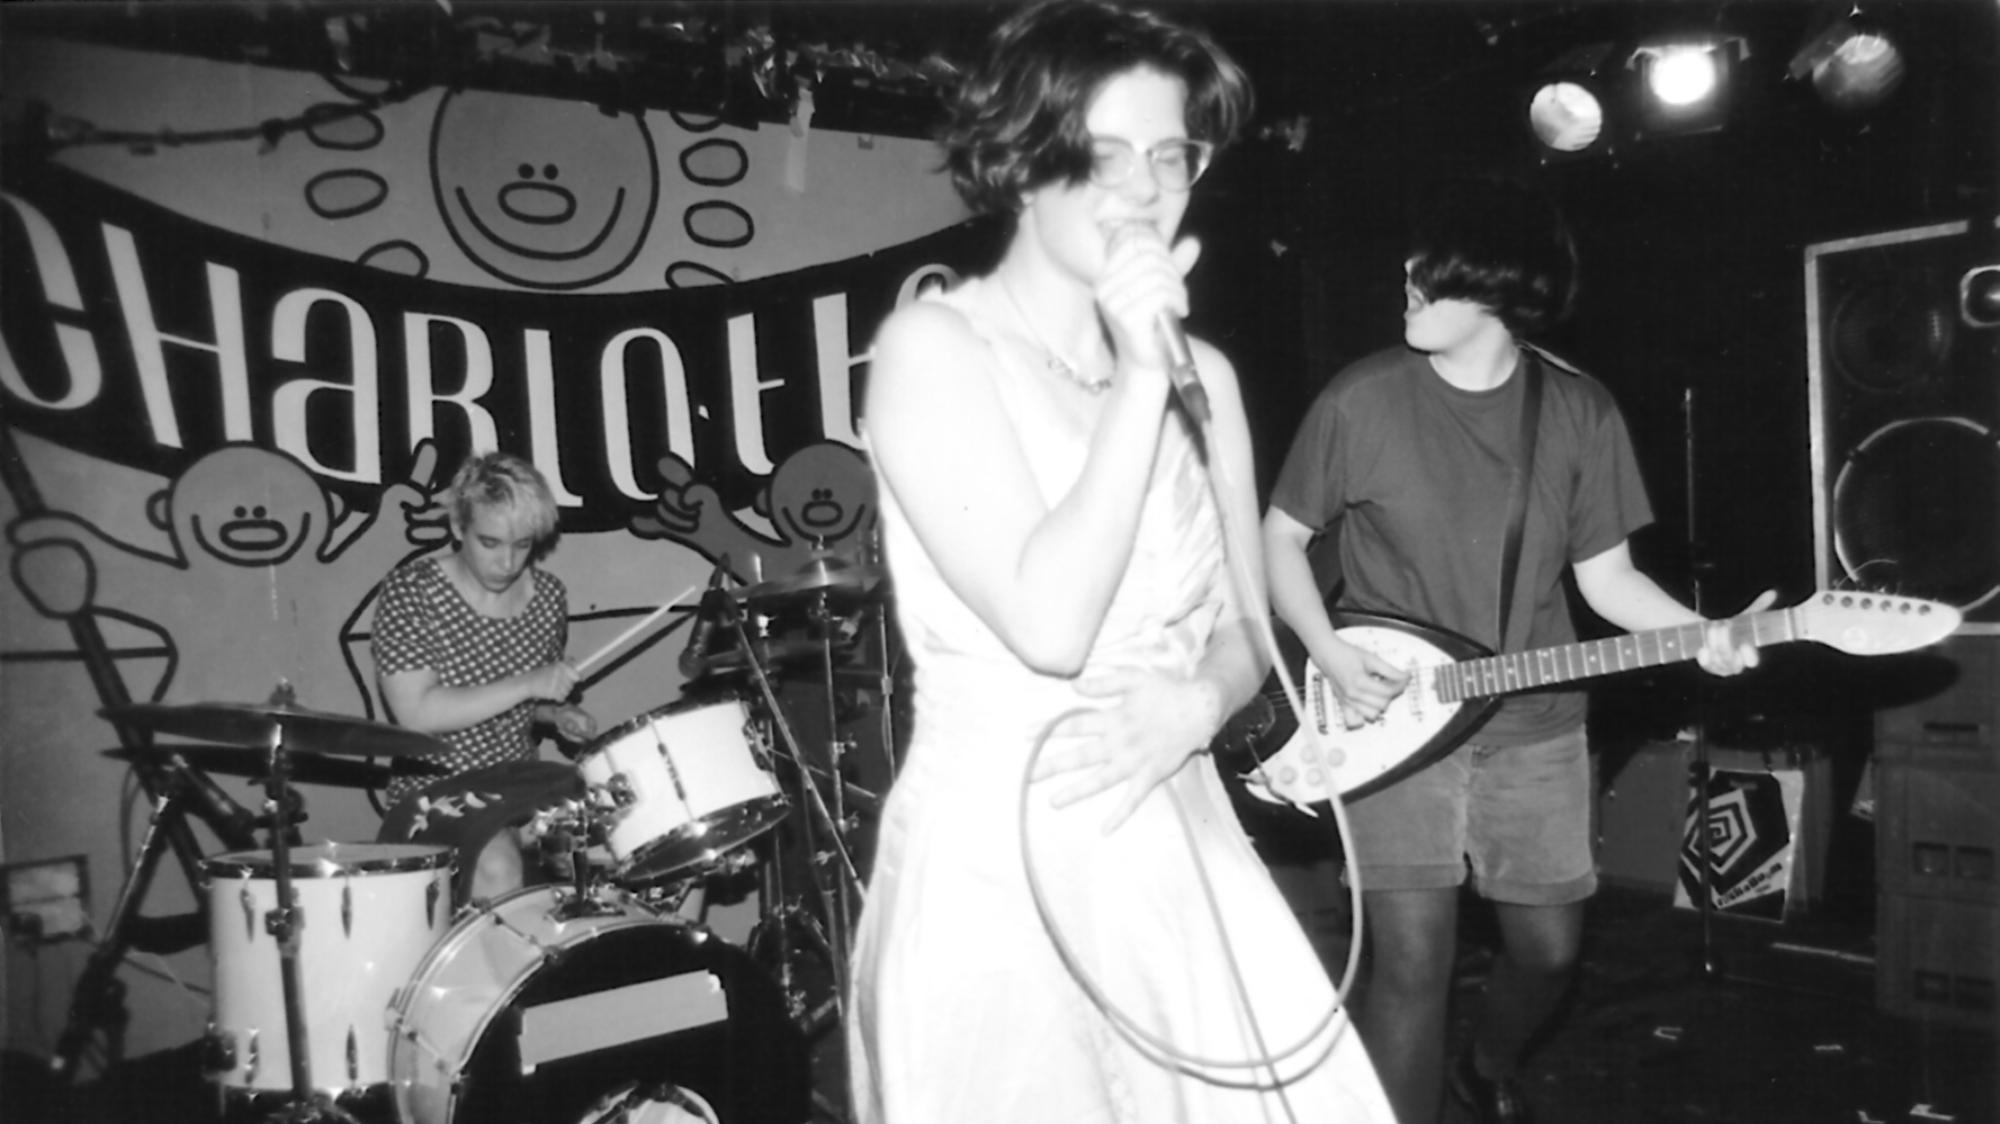 riot-grrrl-was-about-much-more-than-music-1437055942